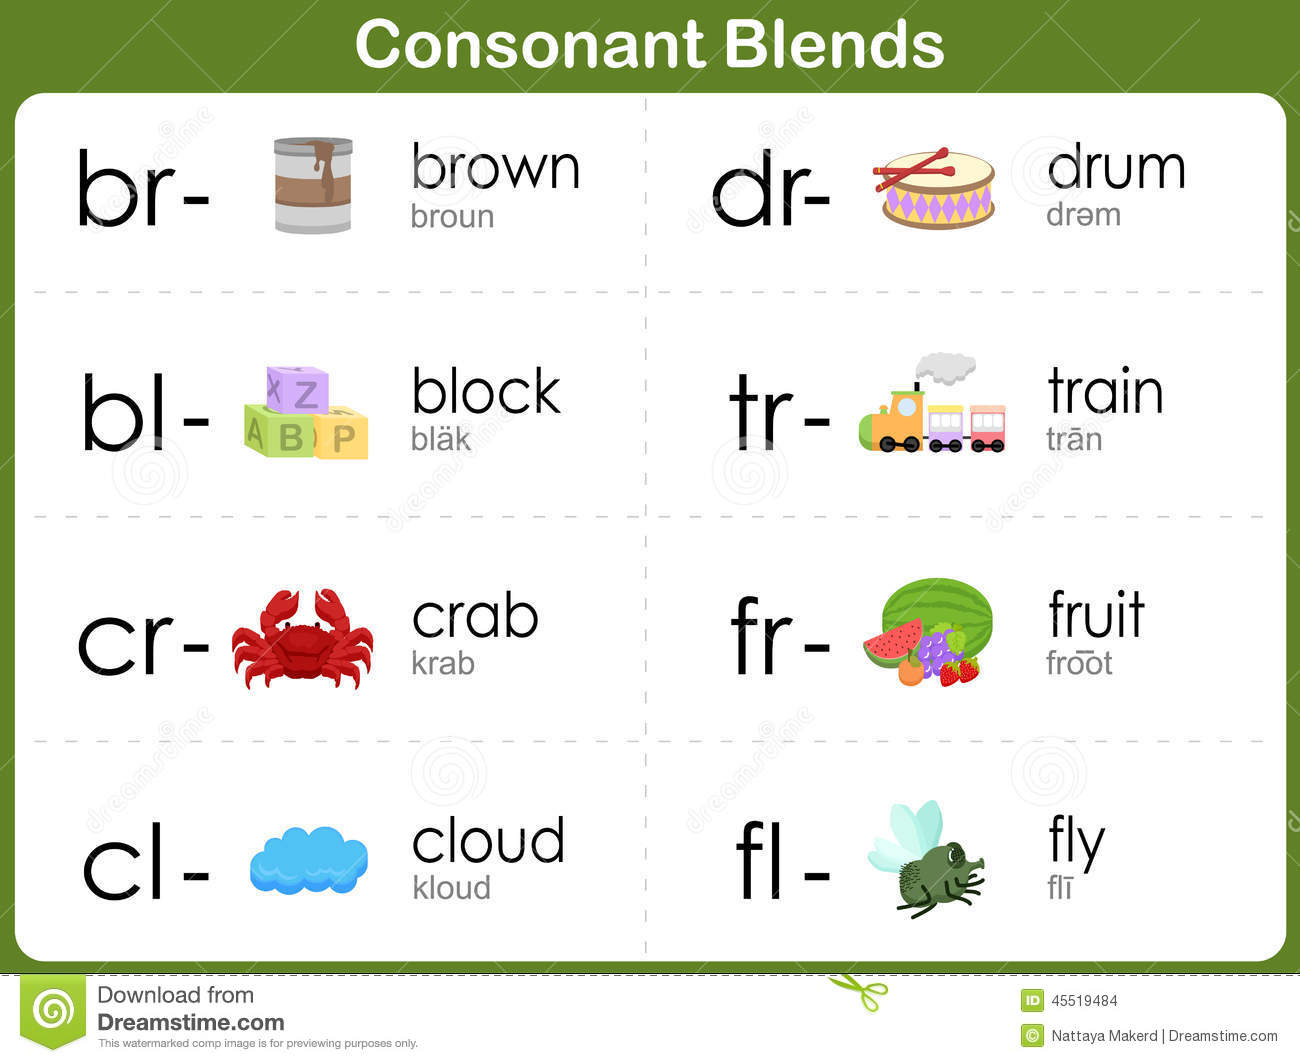 Worksheet Consonant Blends Worksheets For Kindergarten consonant blends worksheet for kids stock vector image 45519484 kids